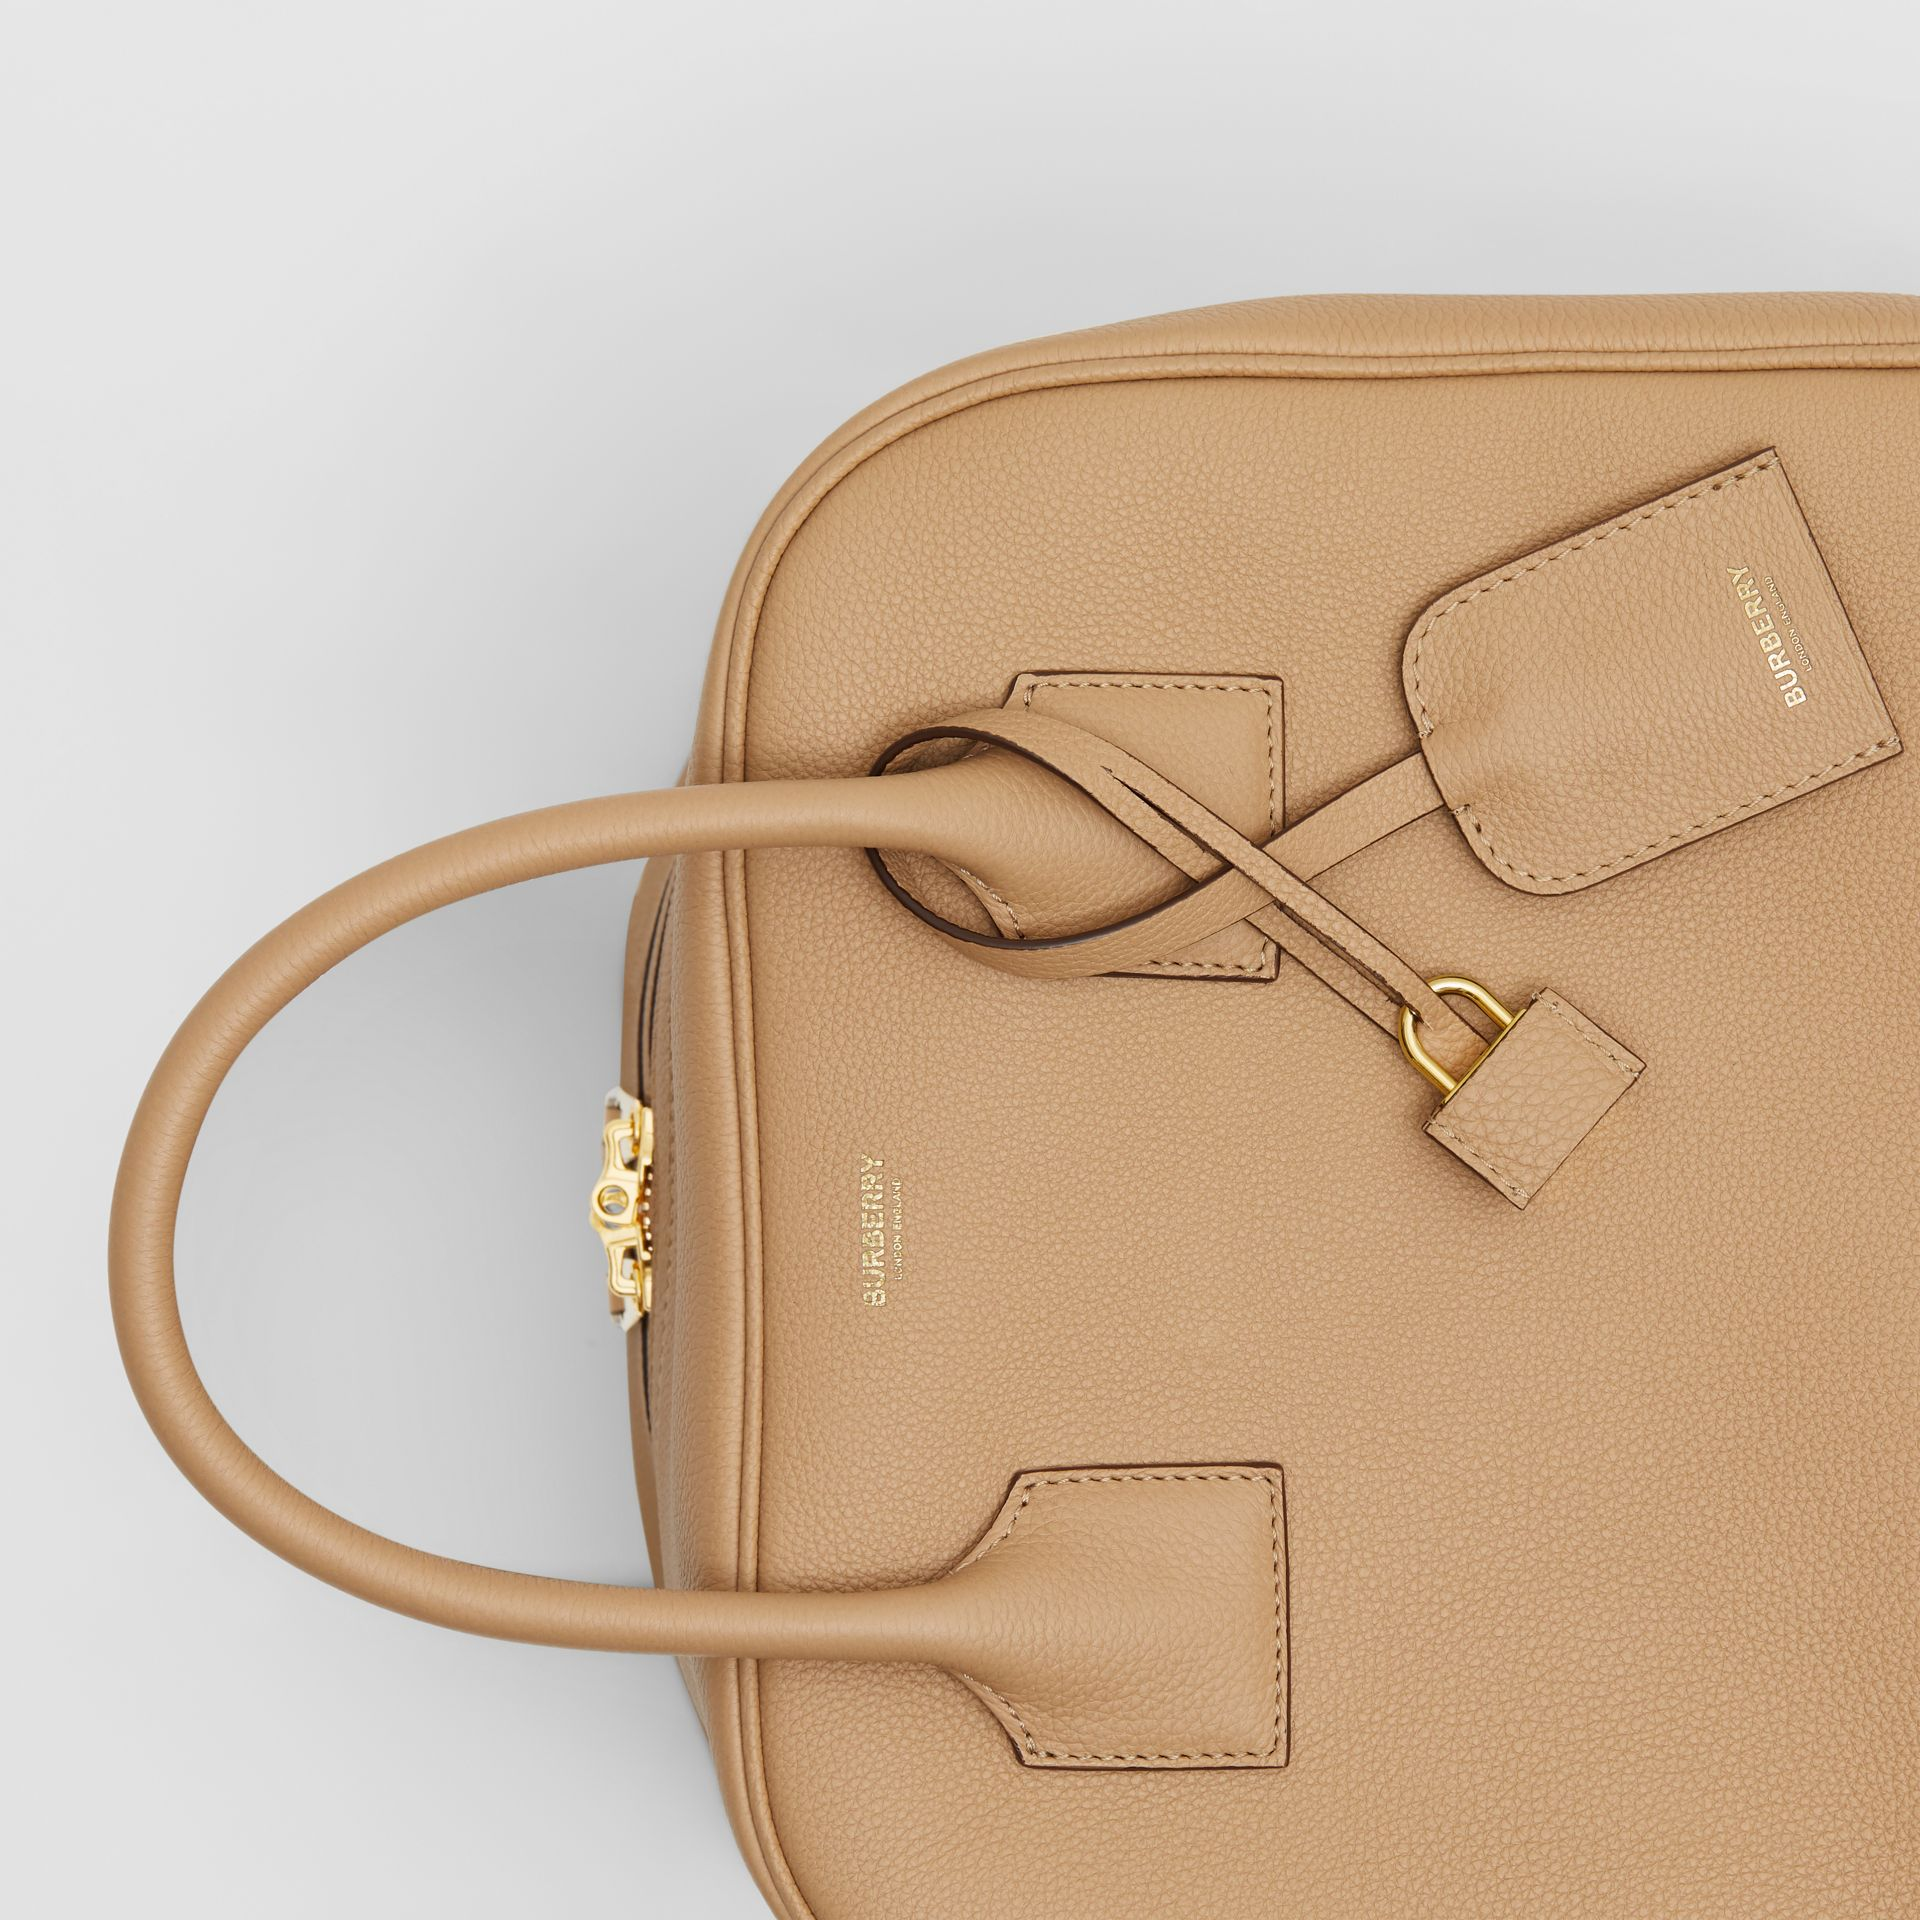 Medium Leather Cube Bag in Biscuit - Women | Burberry - gallery image 8